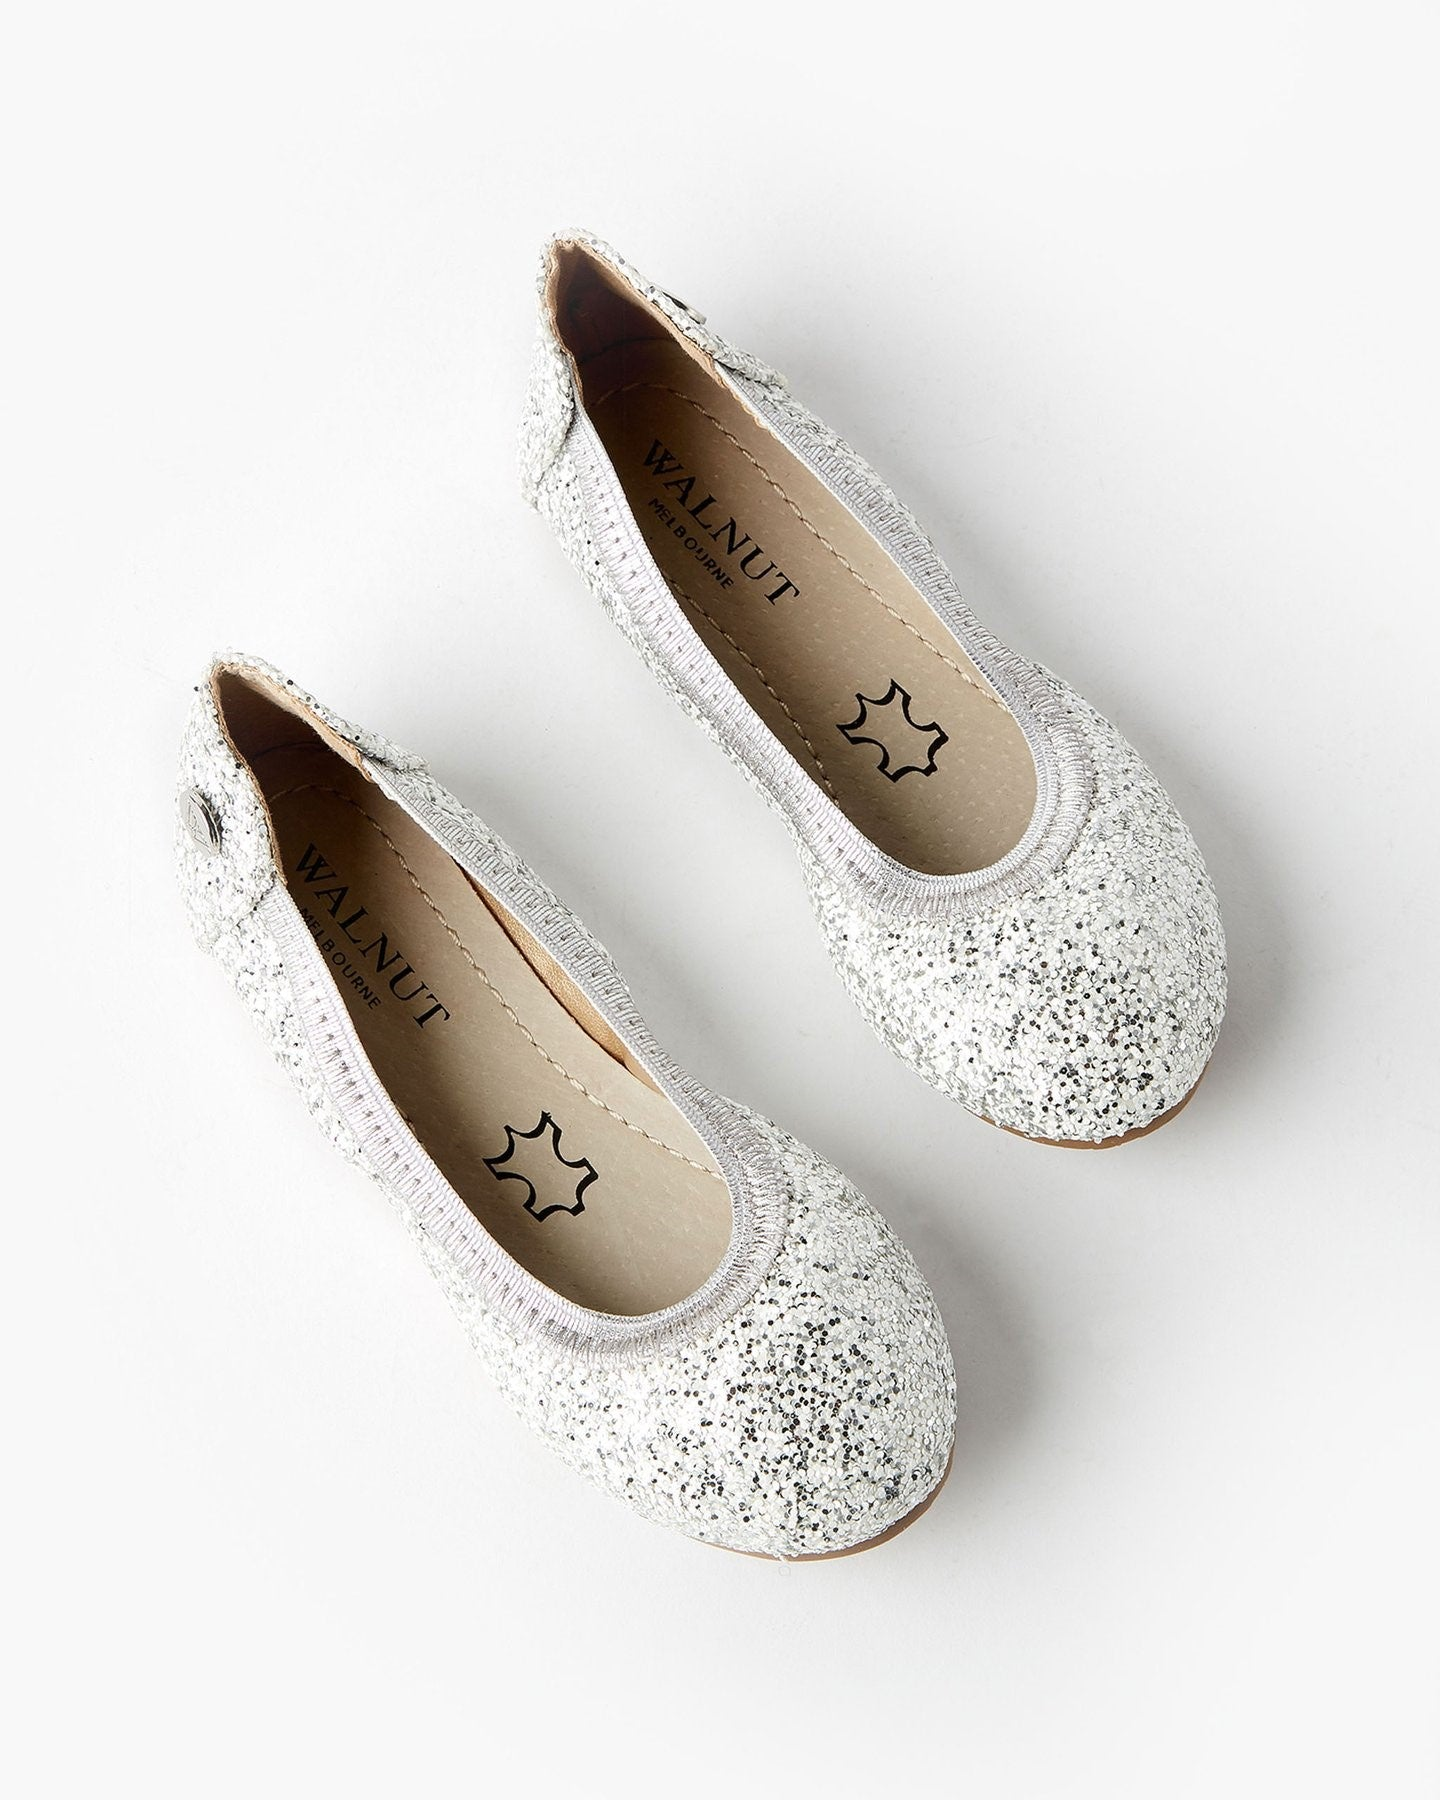 Walnut Ballet Shoes. Silver Sparkle Ballet. Shop online or in store at Sticky Fingers Childrens Boutique in Niddrie, Melbourne.